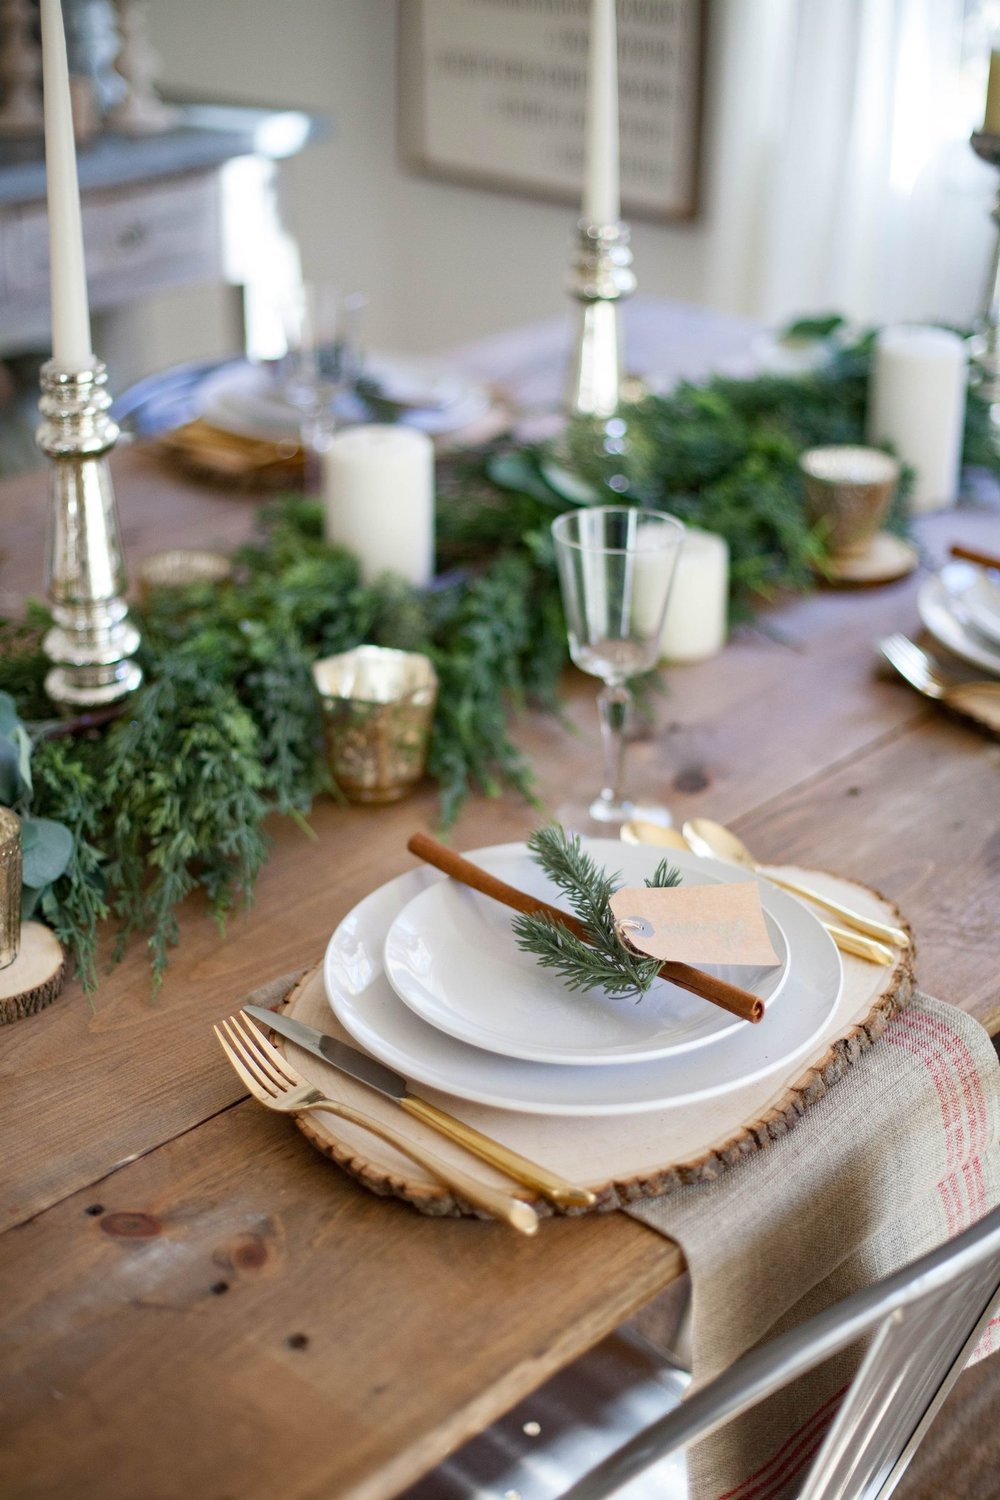 christmas-decorating-ideas-07-1504883349.jpg